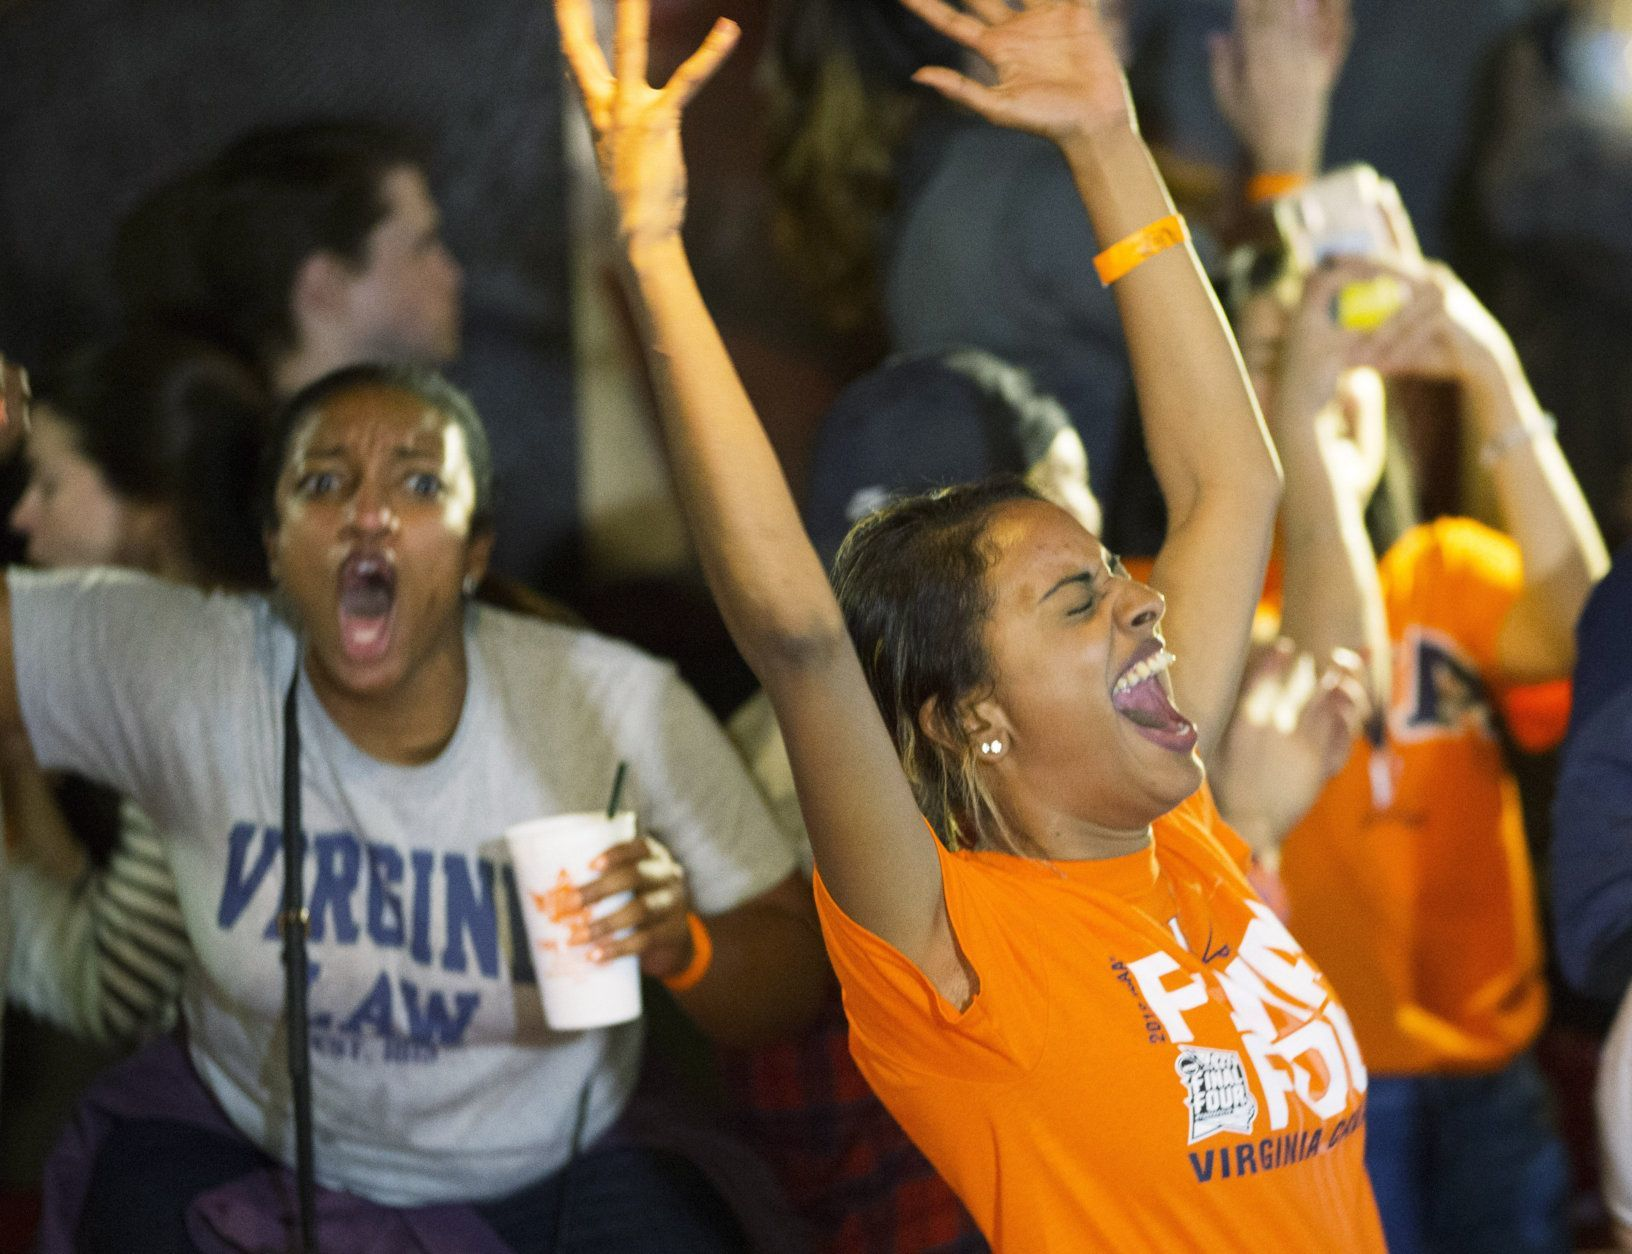 Virginia fans celebrate their teams win of the championship of the Final Four NCAA college basketball tournament against Texas Tech, at a bar near the school in Richmond, Va., Monday, April 8, 2019. (AP Photo/Steve Helber)